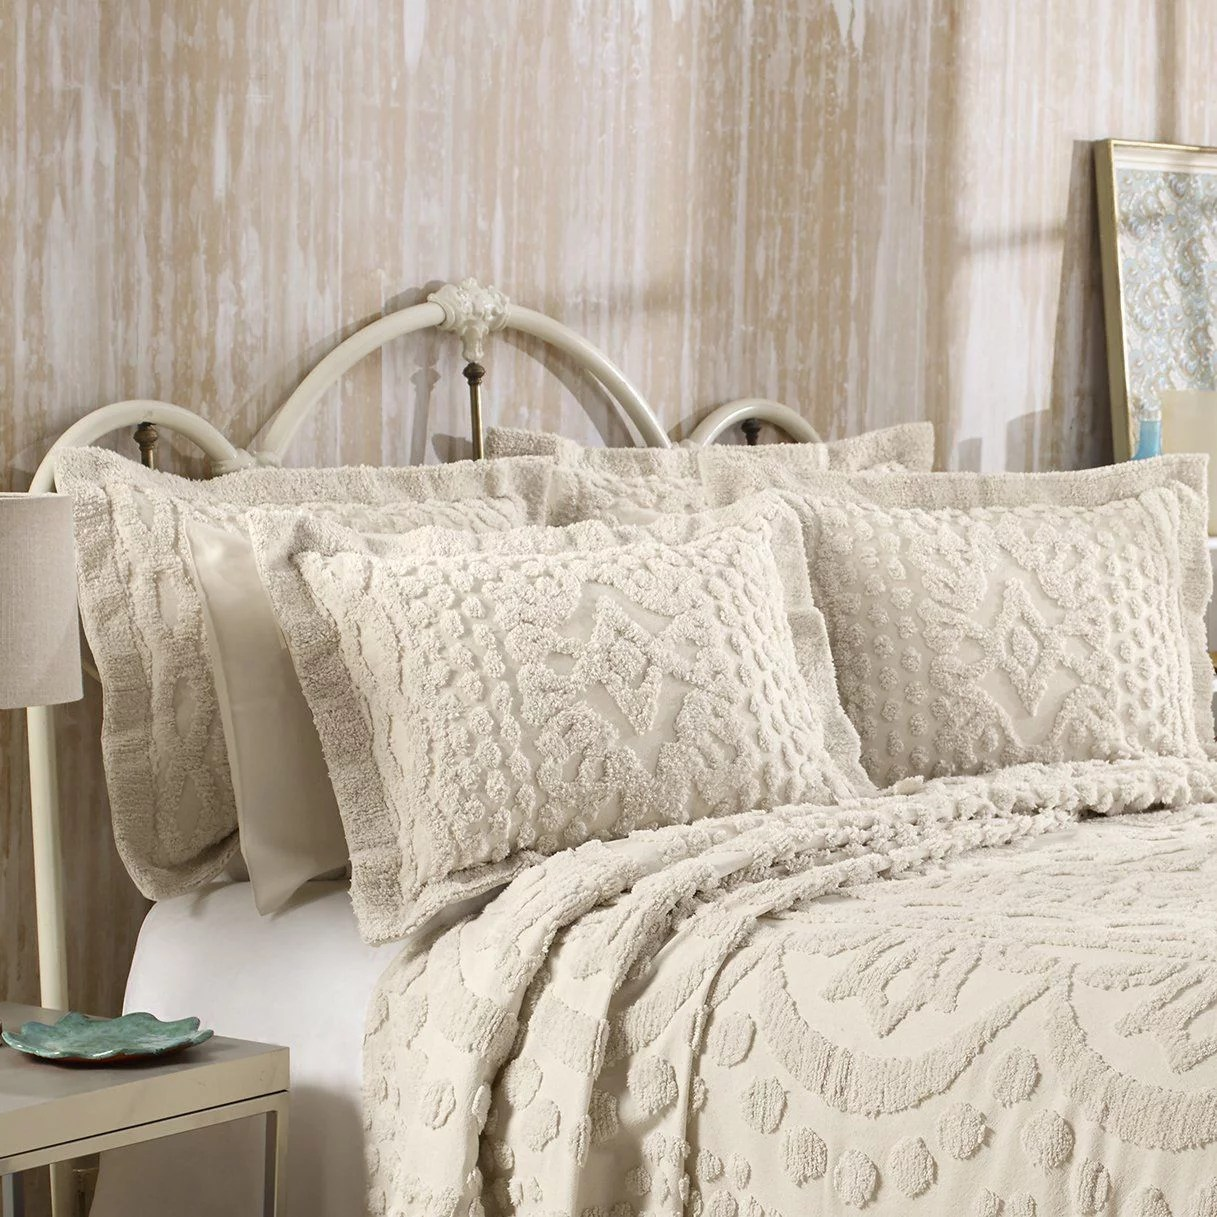 kingston tufted chenille bedspread and pillow sham set all cotton queen size beige walmart com